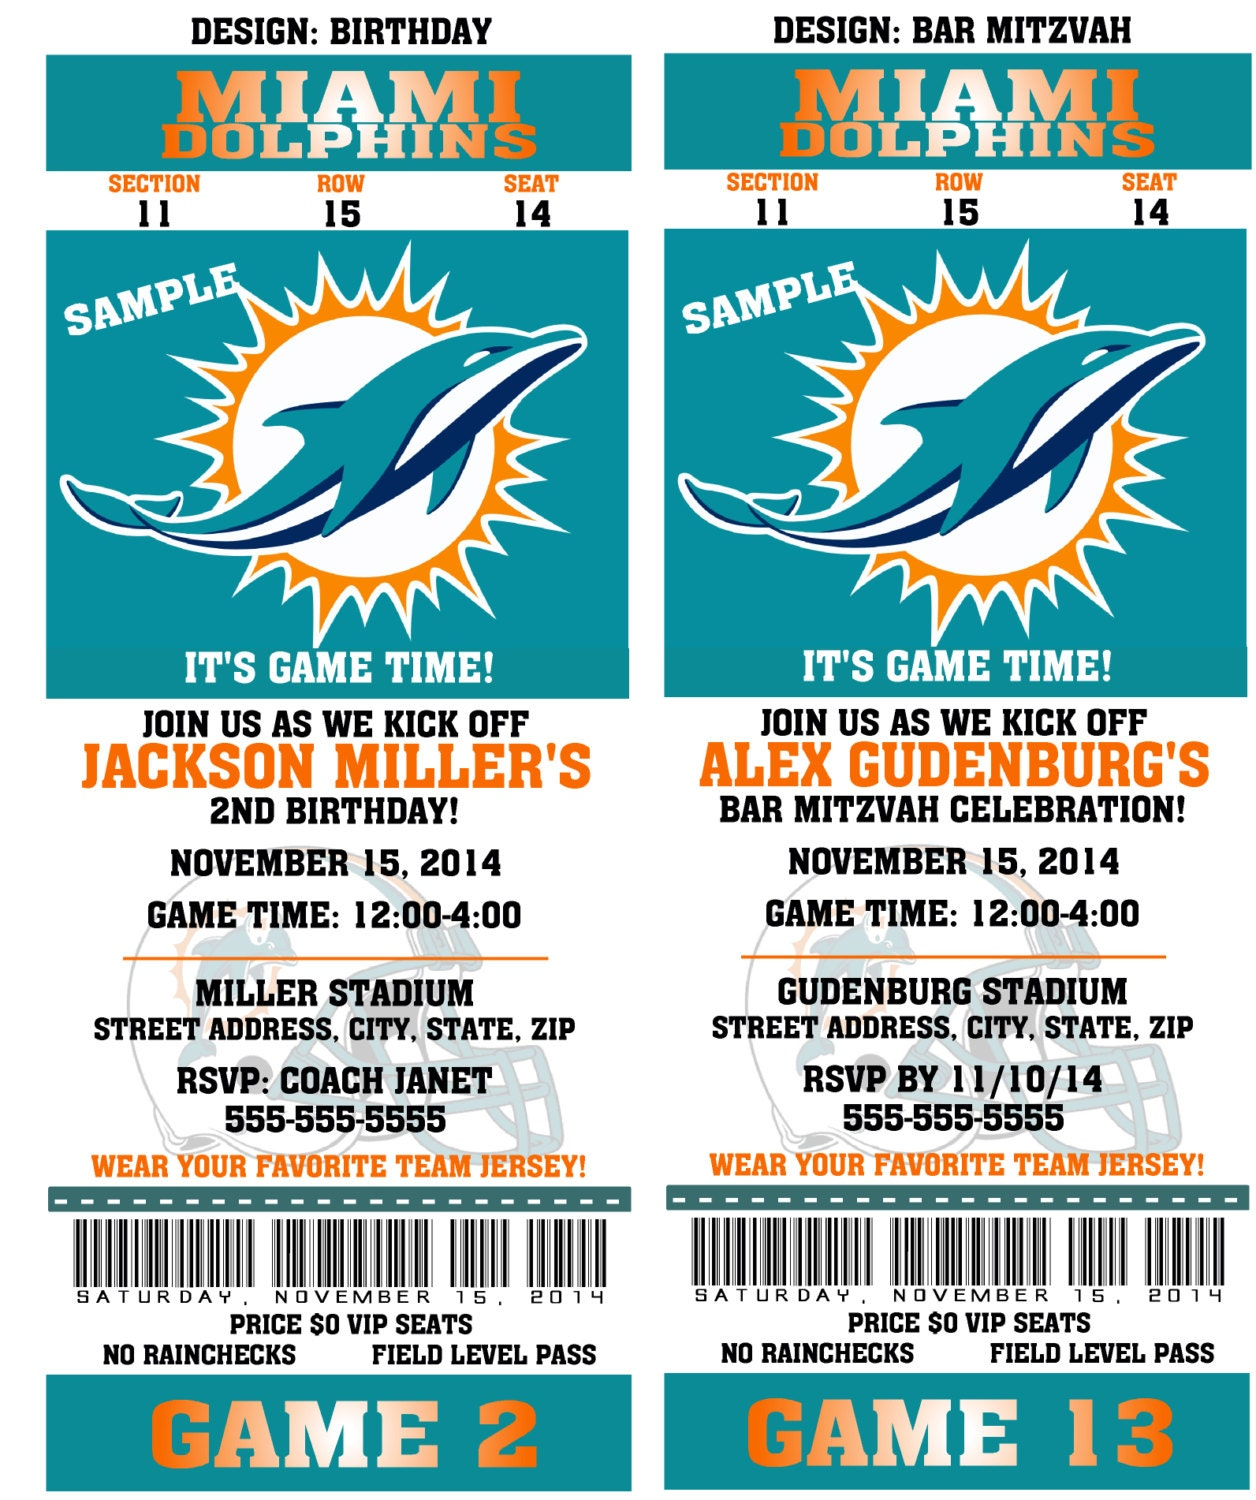 Printable Birthday Party Invitation Card Miami Dolphins – Printable Birthday Party Invitation Cards